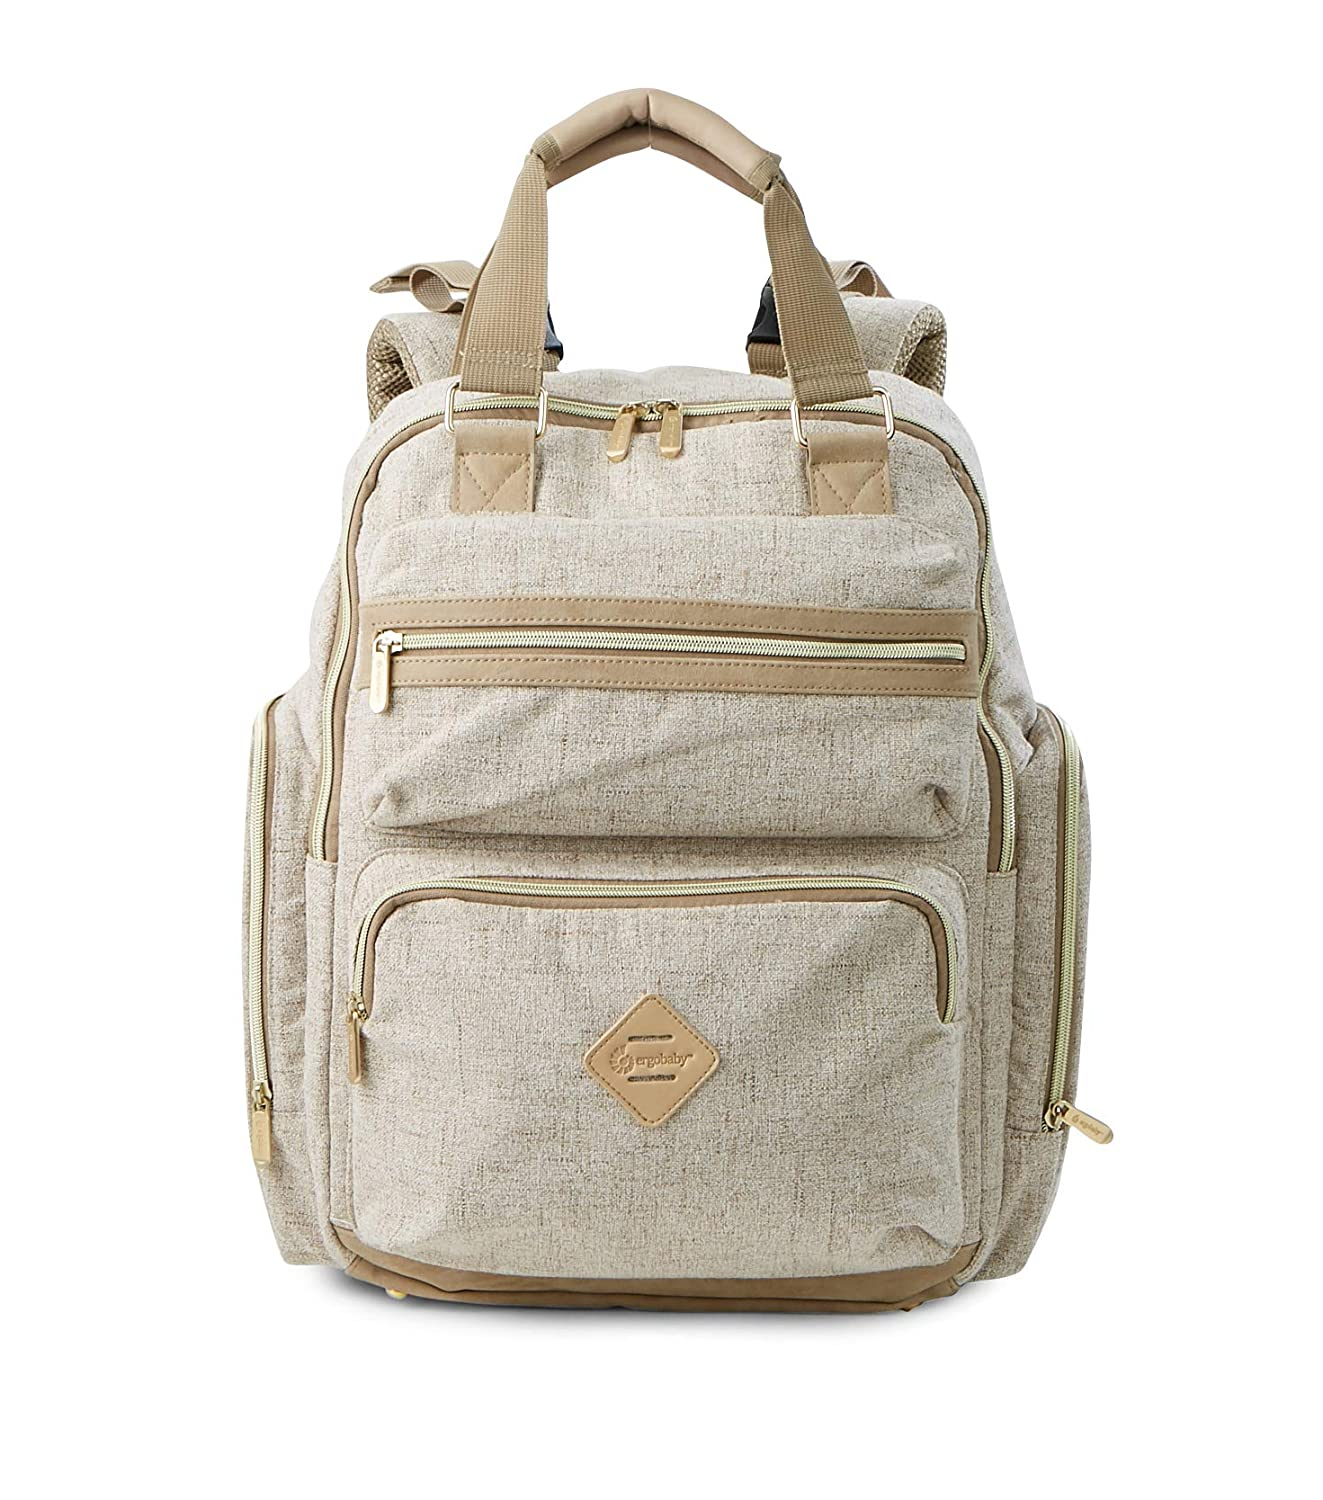 Ergobaby Out for Adventure Back Pack Diaper Bag, Linen